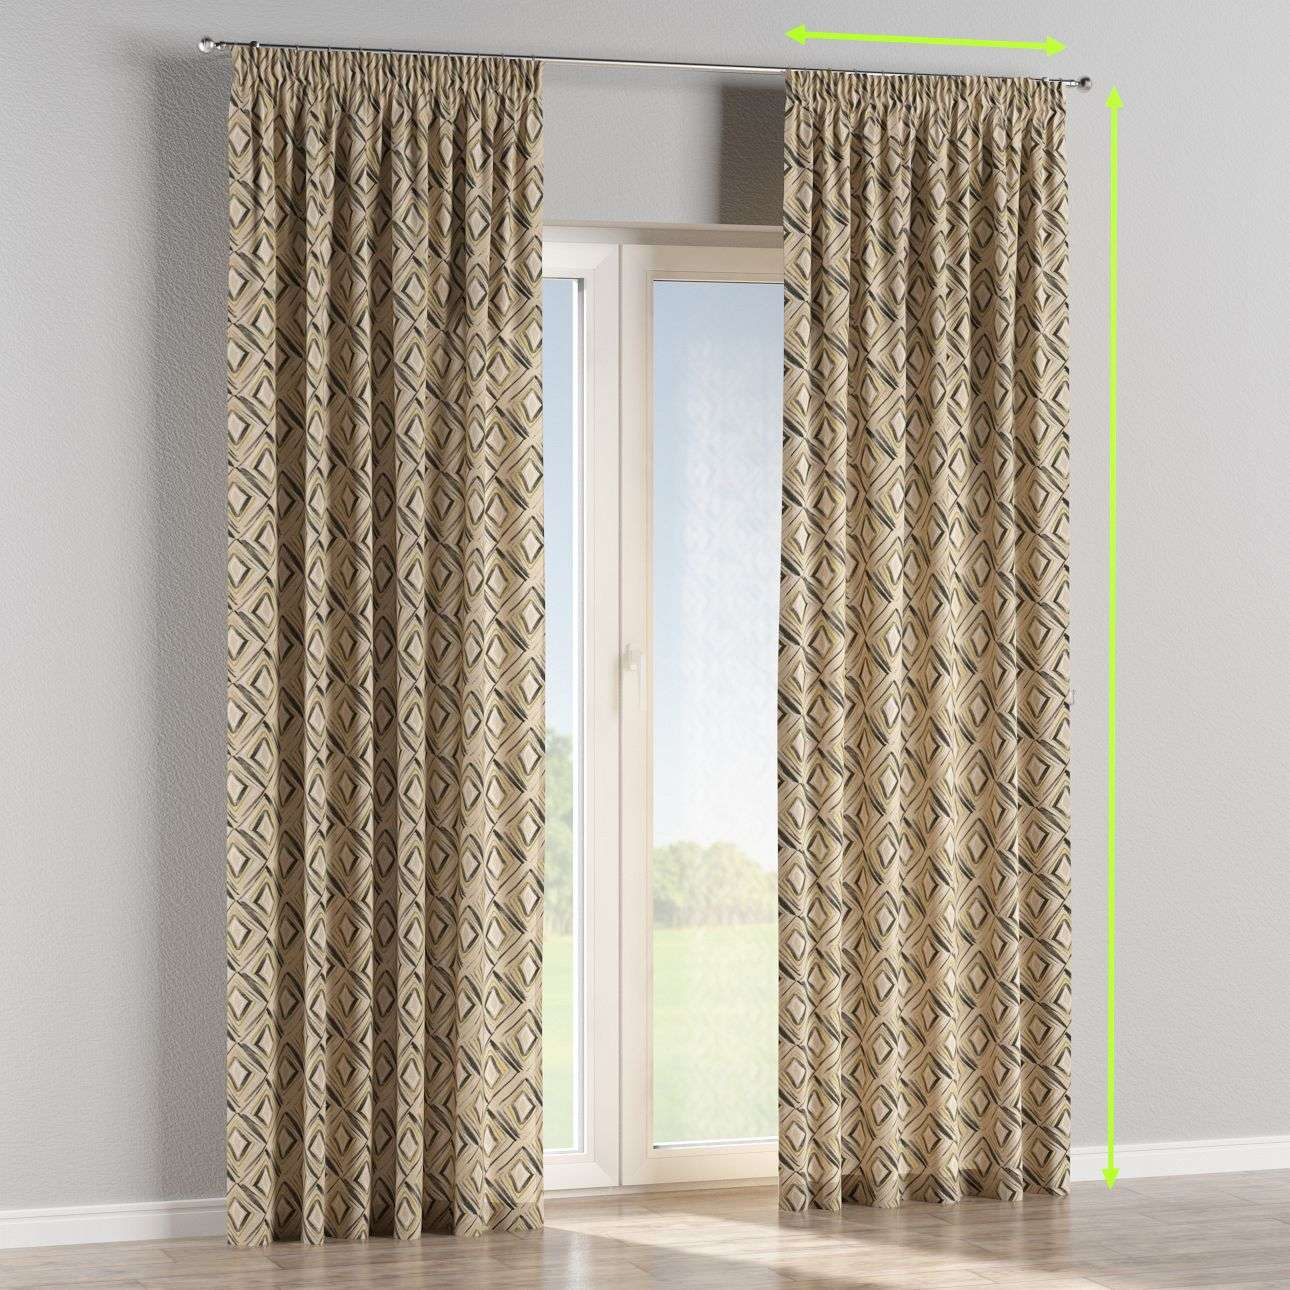 Pencil pleat lined curtains in collection Londres, fabric: 140-46